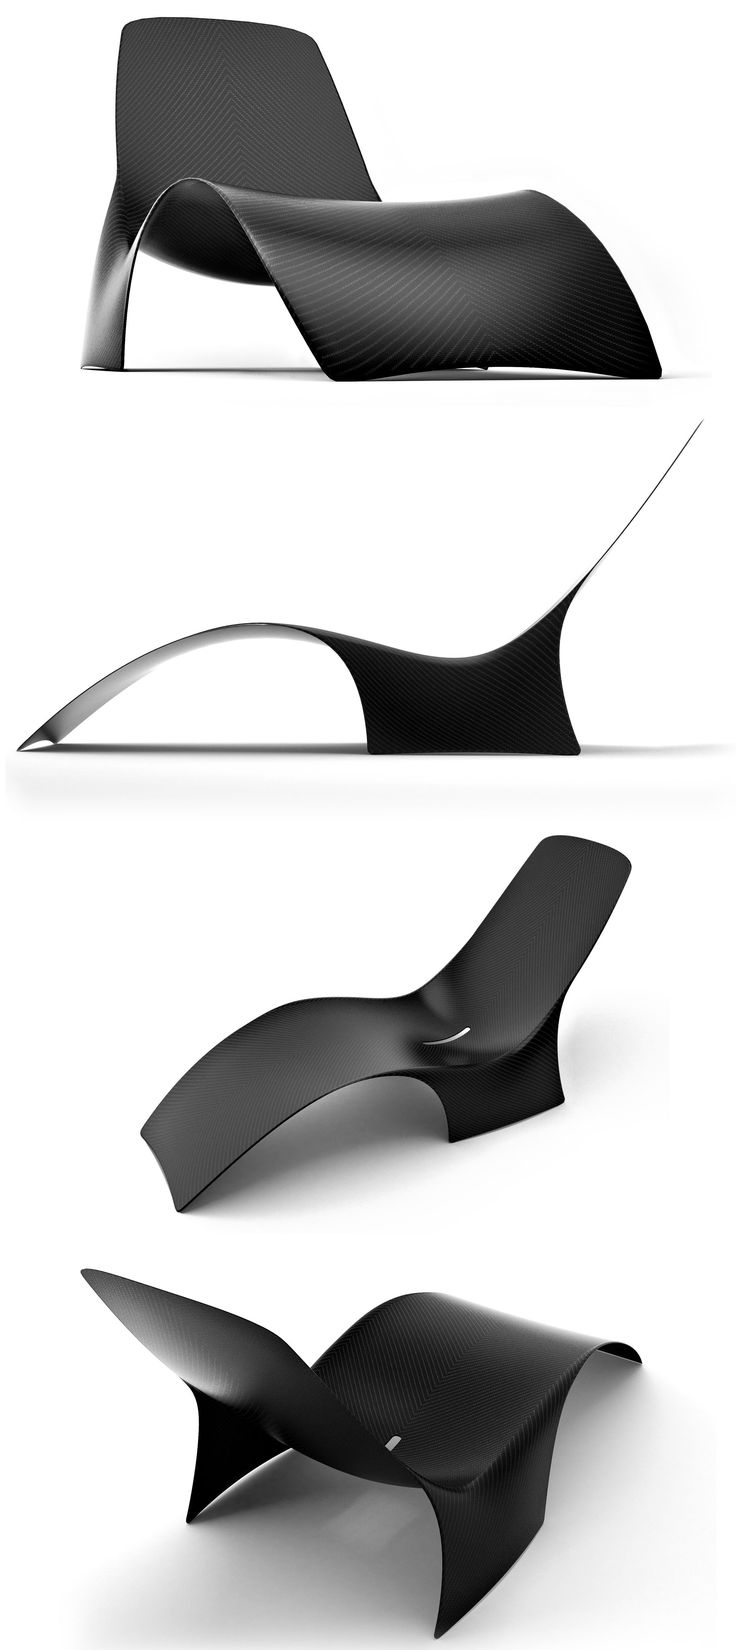 A 'Chaise Longue' is traditionally an upholstered sofa in the shape of a chair that is long enough to support the legs. This is MAST element's carbon fibre version. They teamed up with designer Johnny Hugnot to bring us their beautiful minimalistic version of a Chaise Longue titled 'Ray'.